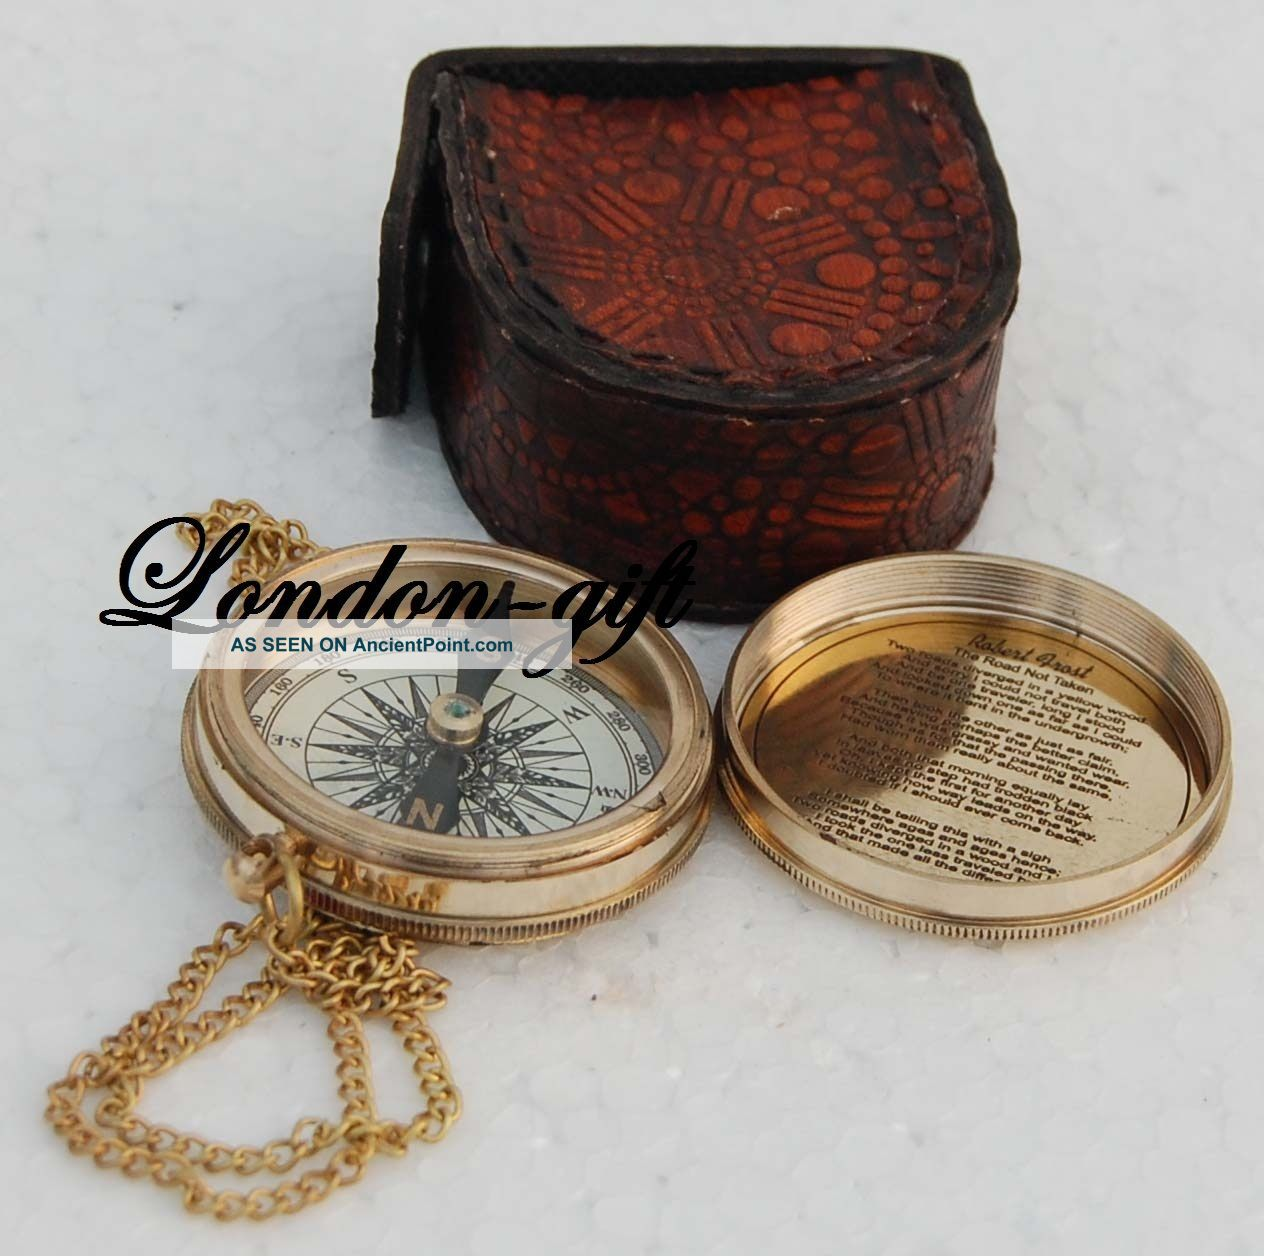 Vintage Compass Poem Compass Engraved Compass Marine Compass W/leather Case Compasses photo